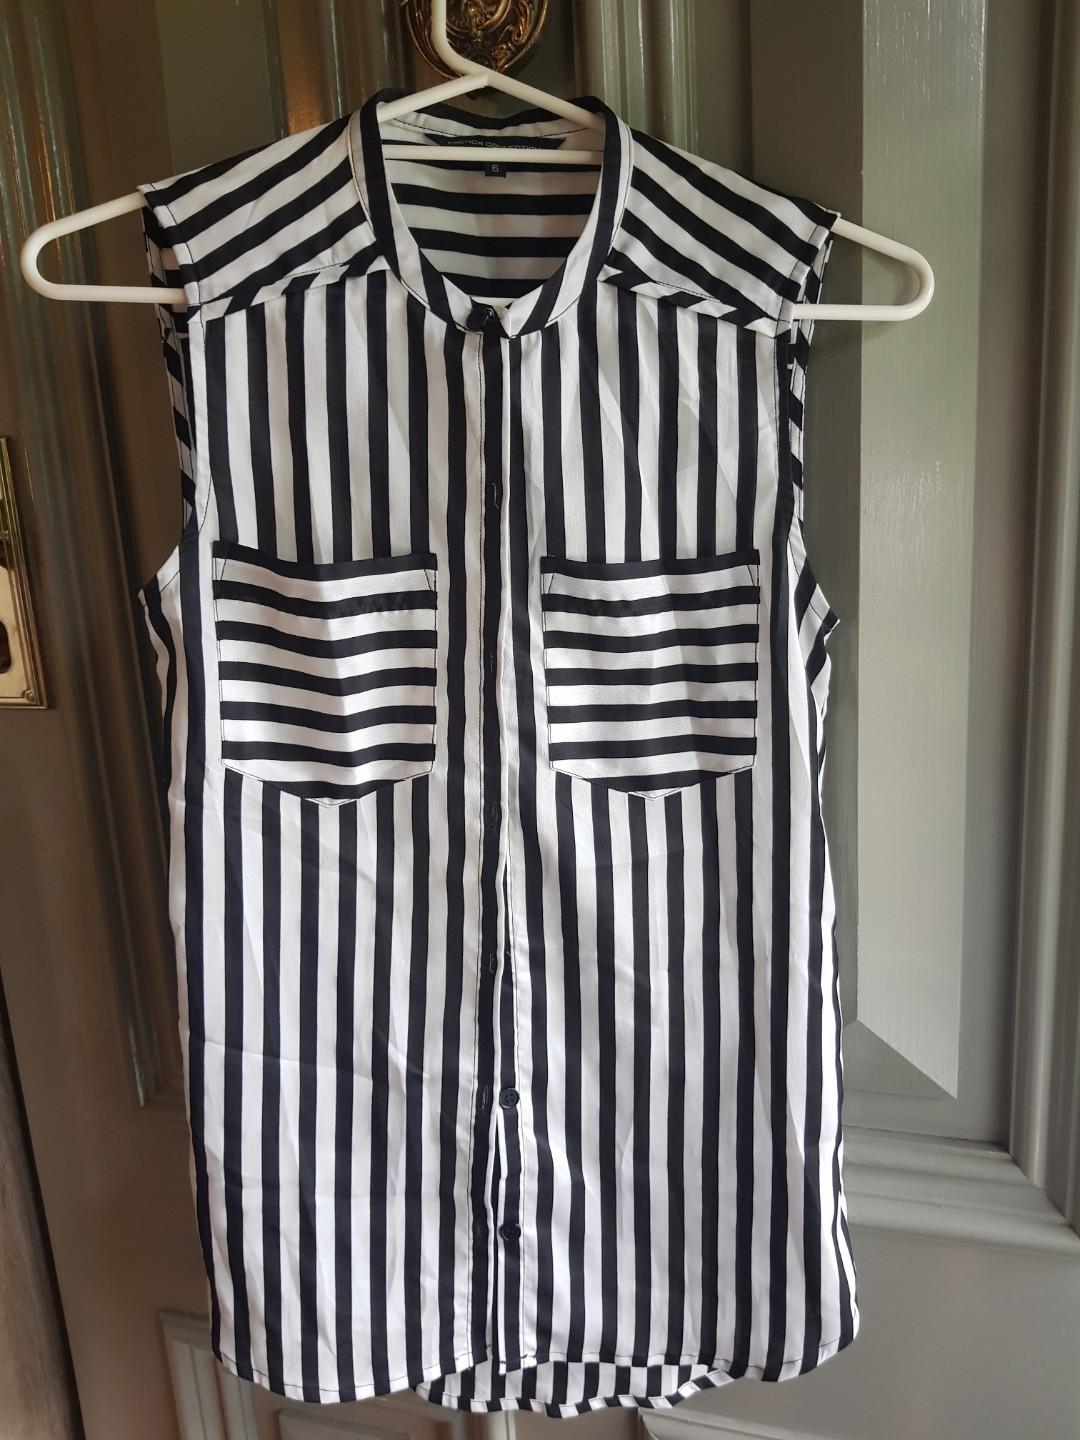 FRENCH CONNECTION black and white striped sleeveless shirt. Size 6.